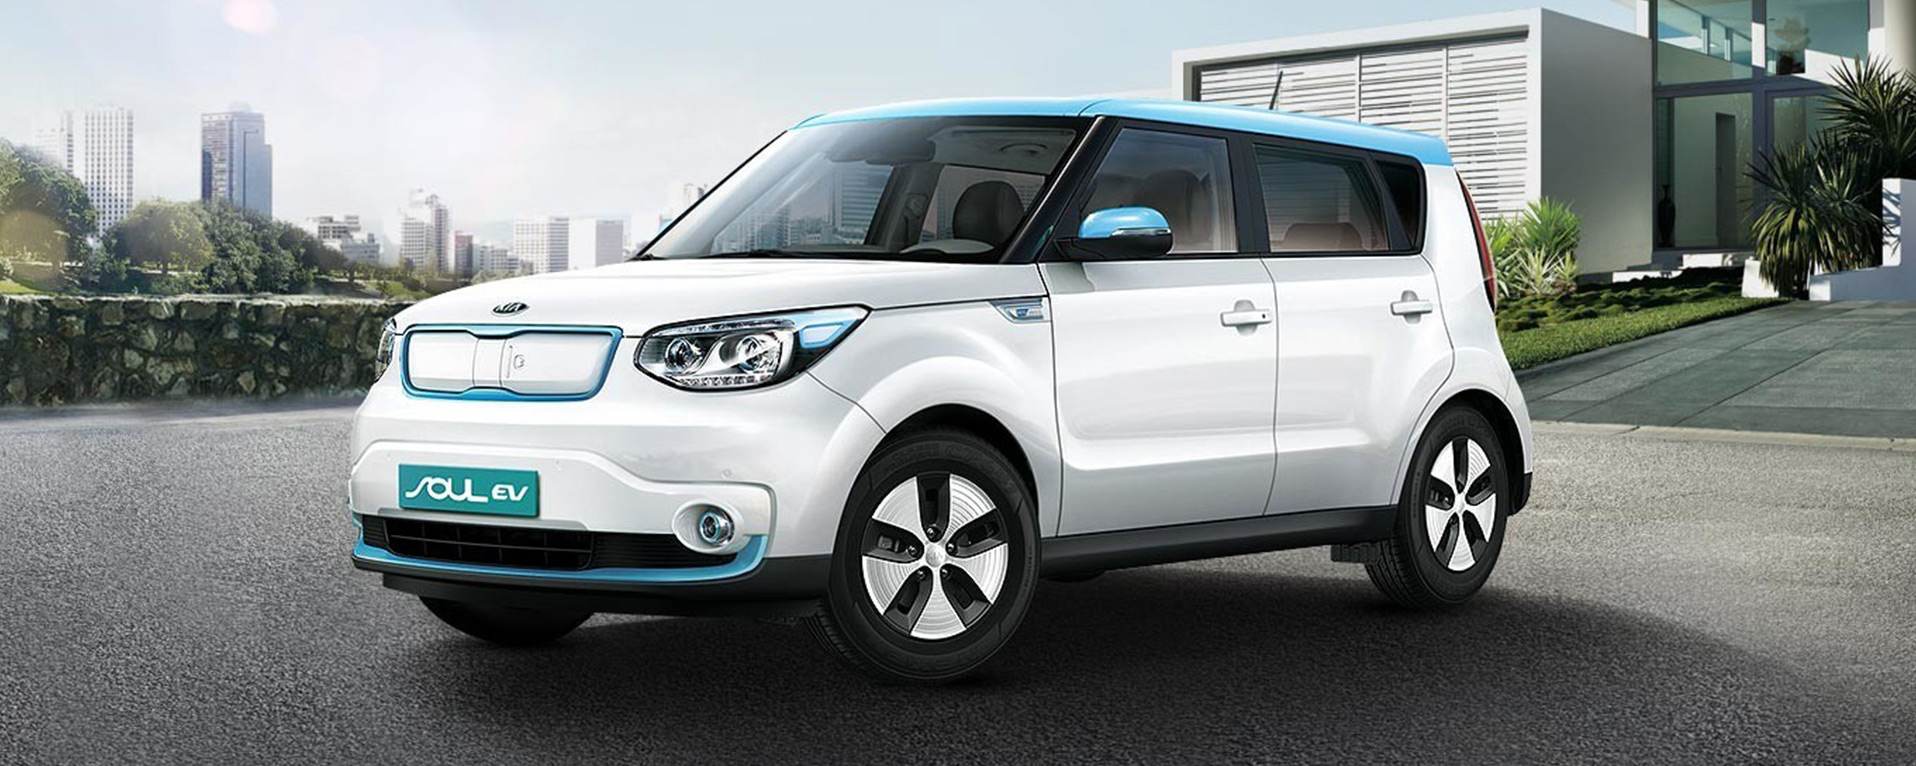 kia soul electric mit motors. Black Bedroom Furniture Sets. Home Design Ideas